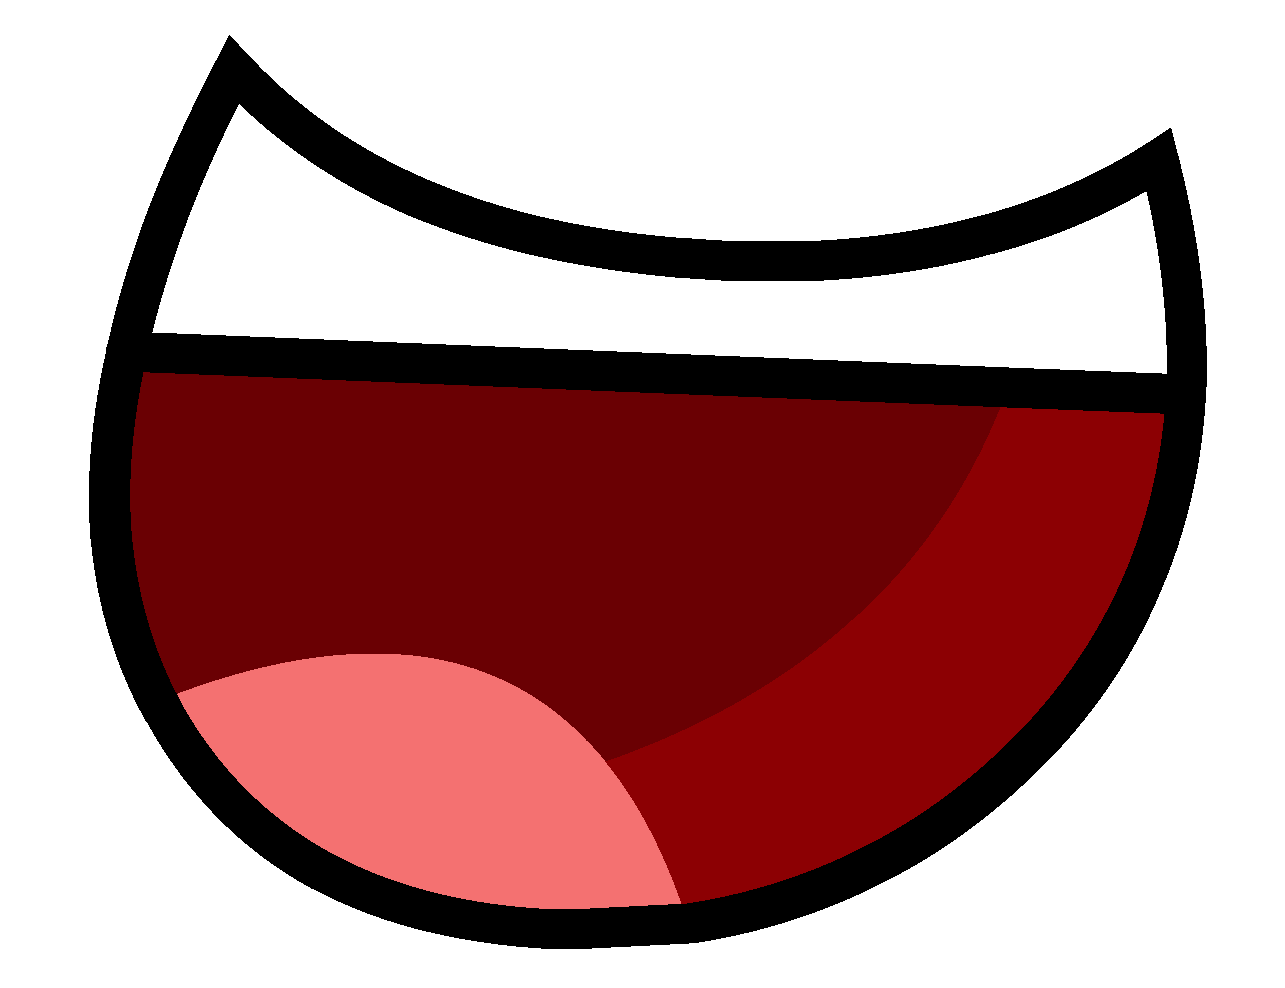 Smile Lips Clipart - Smile Lips, Transparent background PNG HD thumbnail